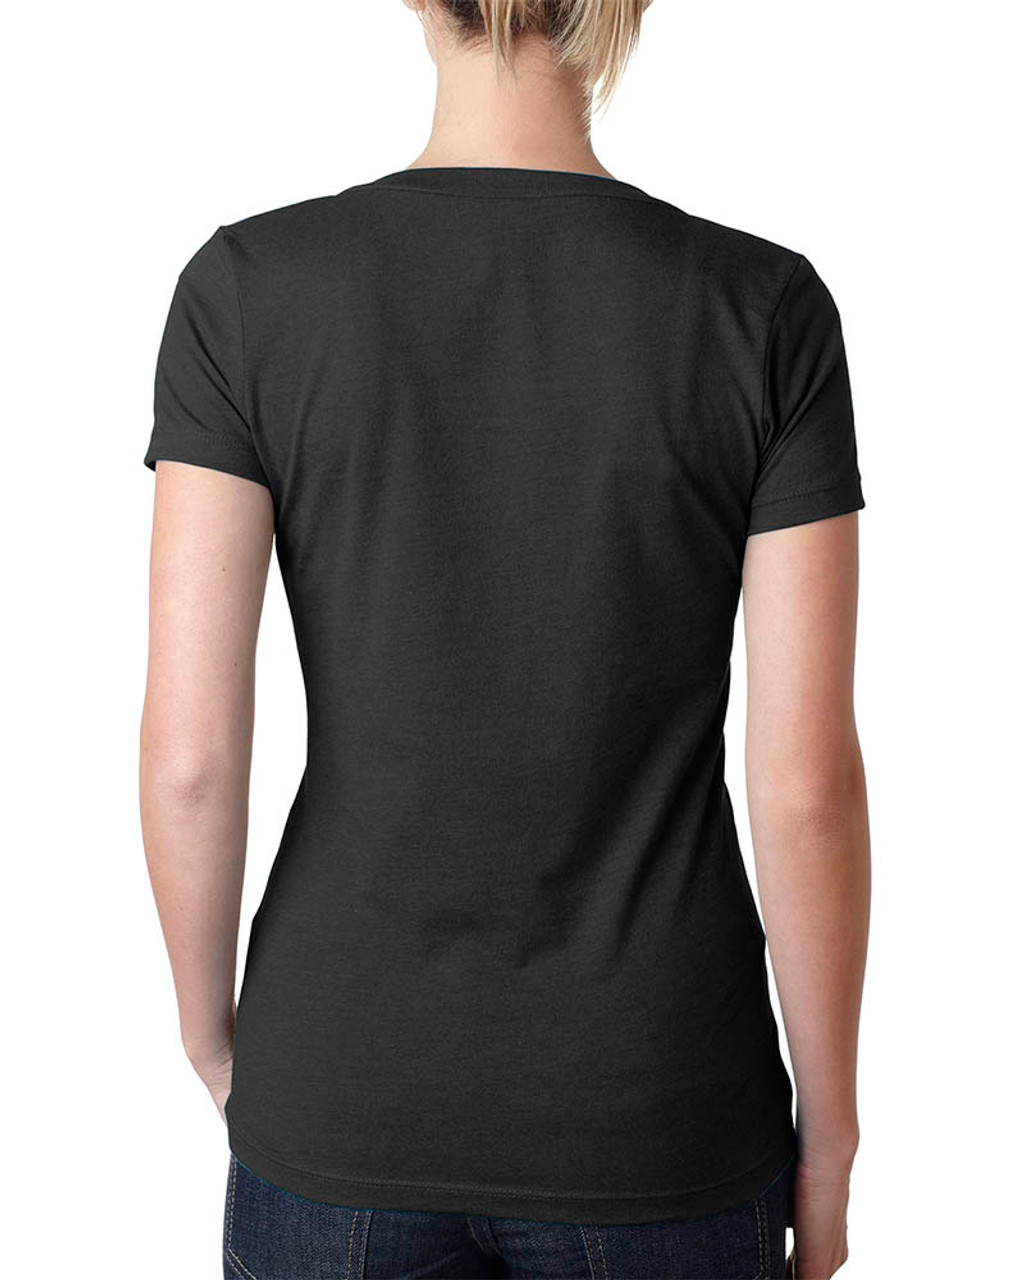 Black - 6640 Next Level Ladies' CVC Deep V-Neck T-shirt  | BlankClothing.ca